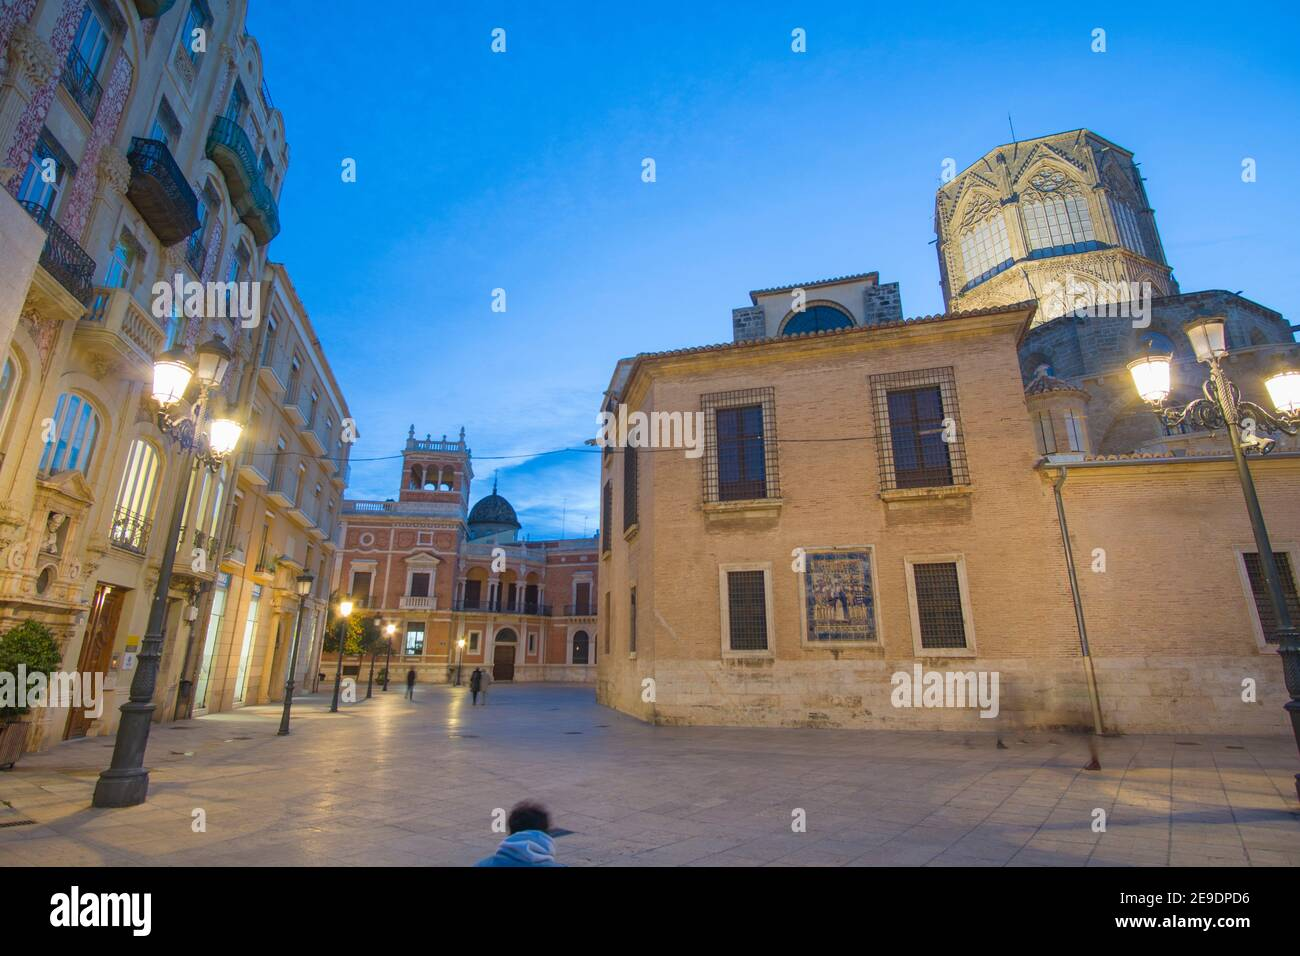 Valencia Spain on December 10, 2020: Night in Christmas the cathedral. Stock Photo